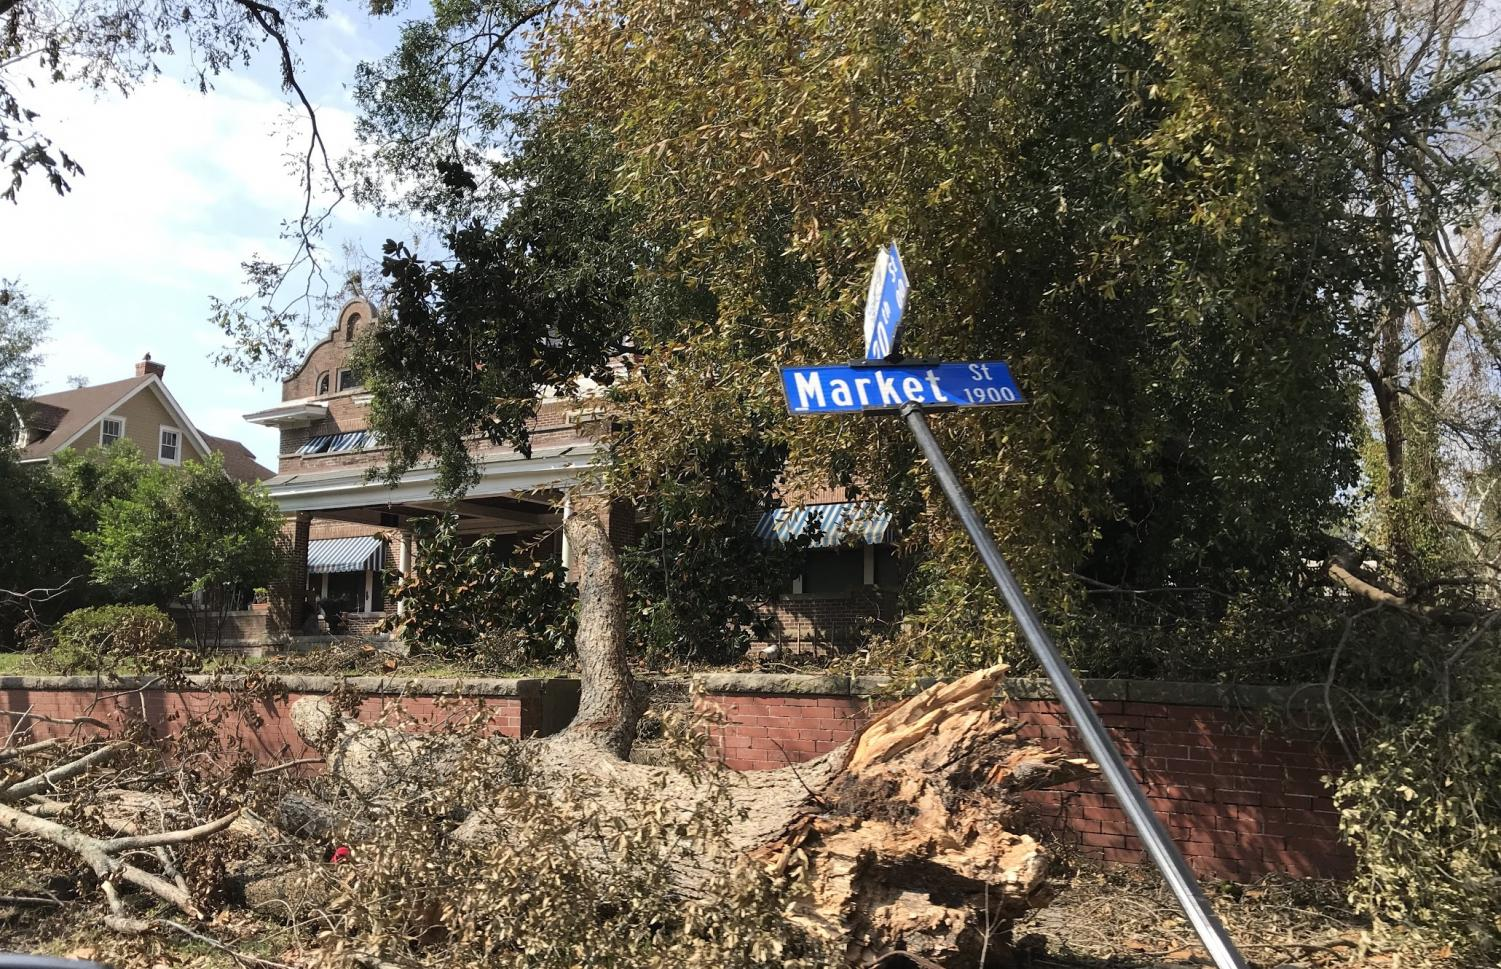 Tree and street sign damage in downtown Wilmington at Market st and 20th st.